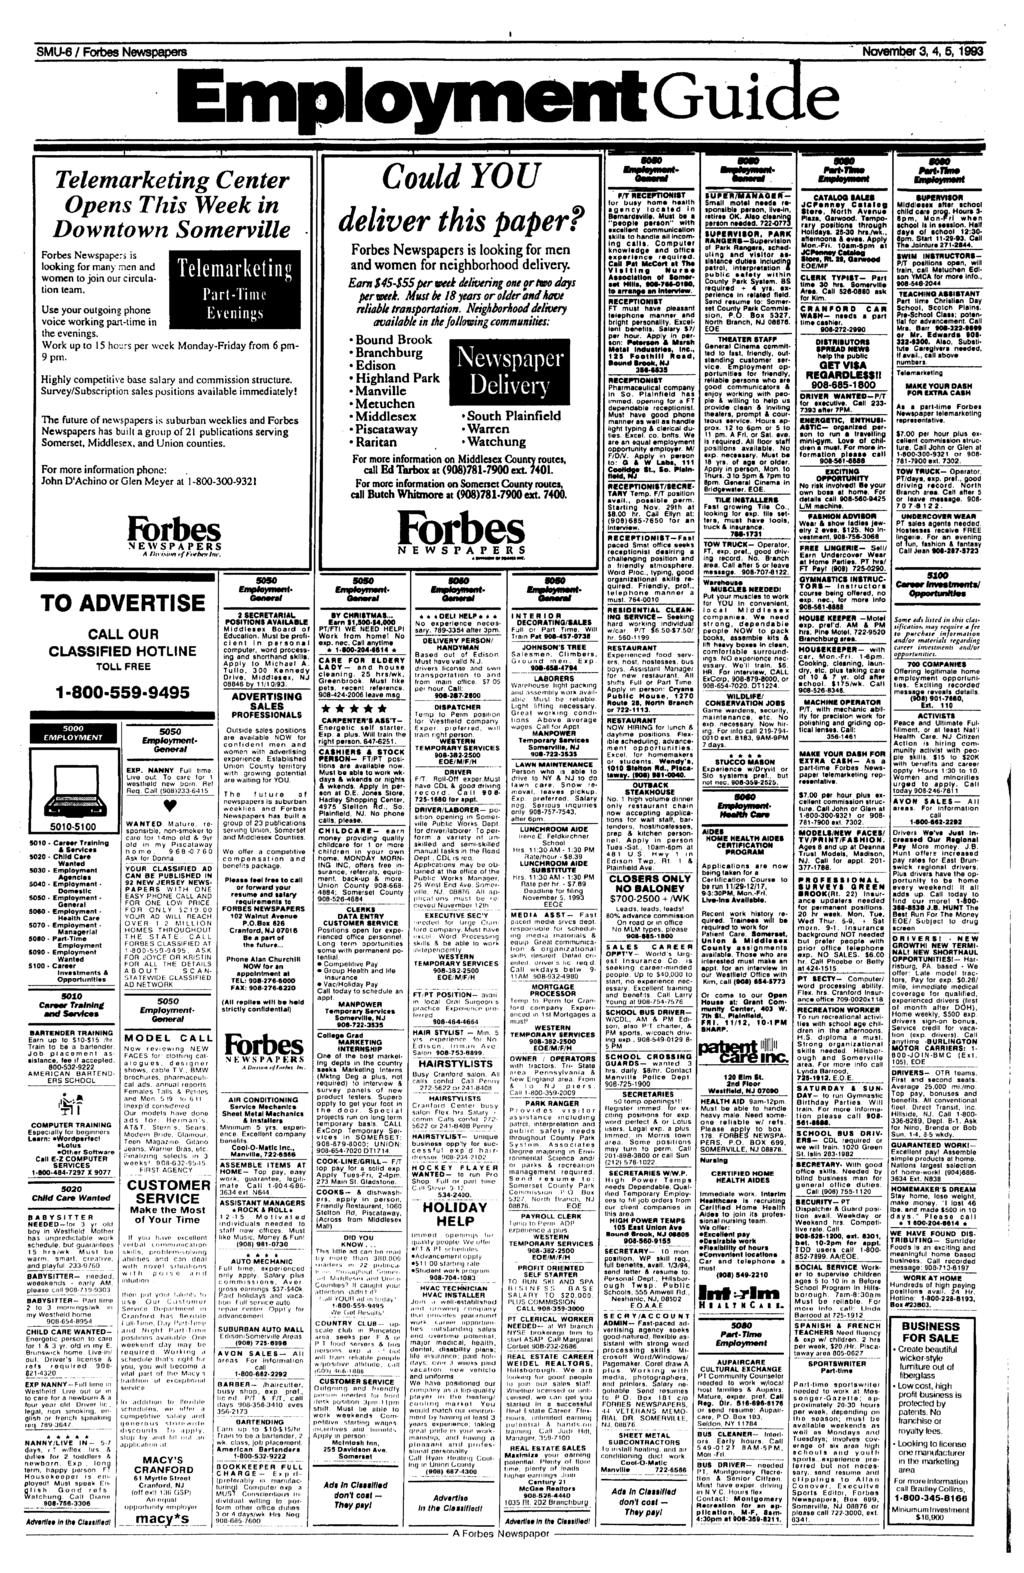 NewspapersEmployment SMU-6 /Forbes November Guide 3, 4, 5,1993 5010 $020 S030 5040 S050 S060 5070 soao S090 5100 Telemarketing Center Opens This Week in Downtown Somerville Forbes Newspapers is